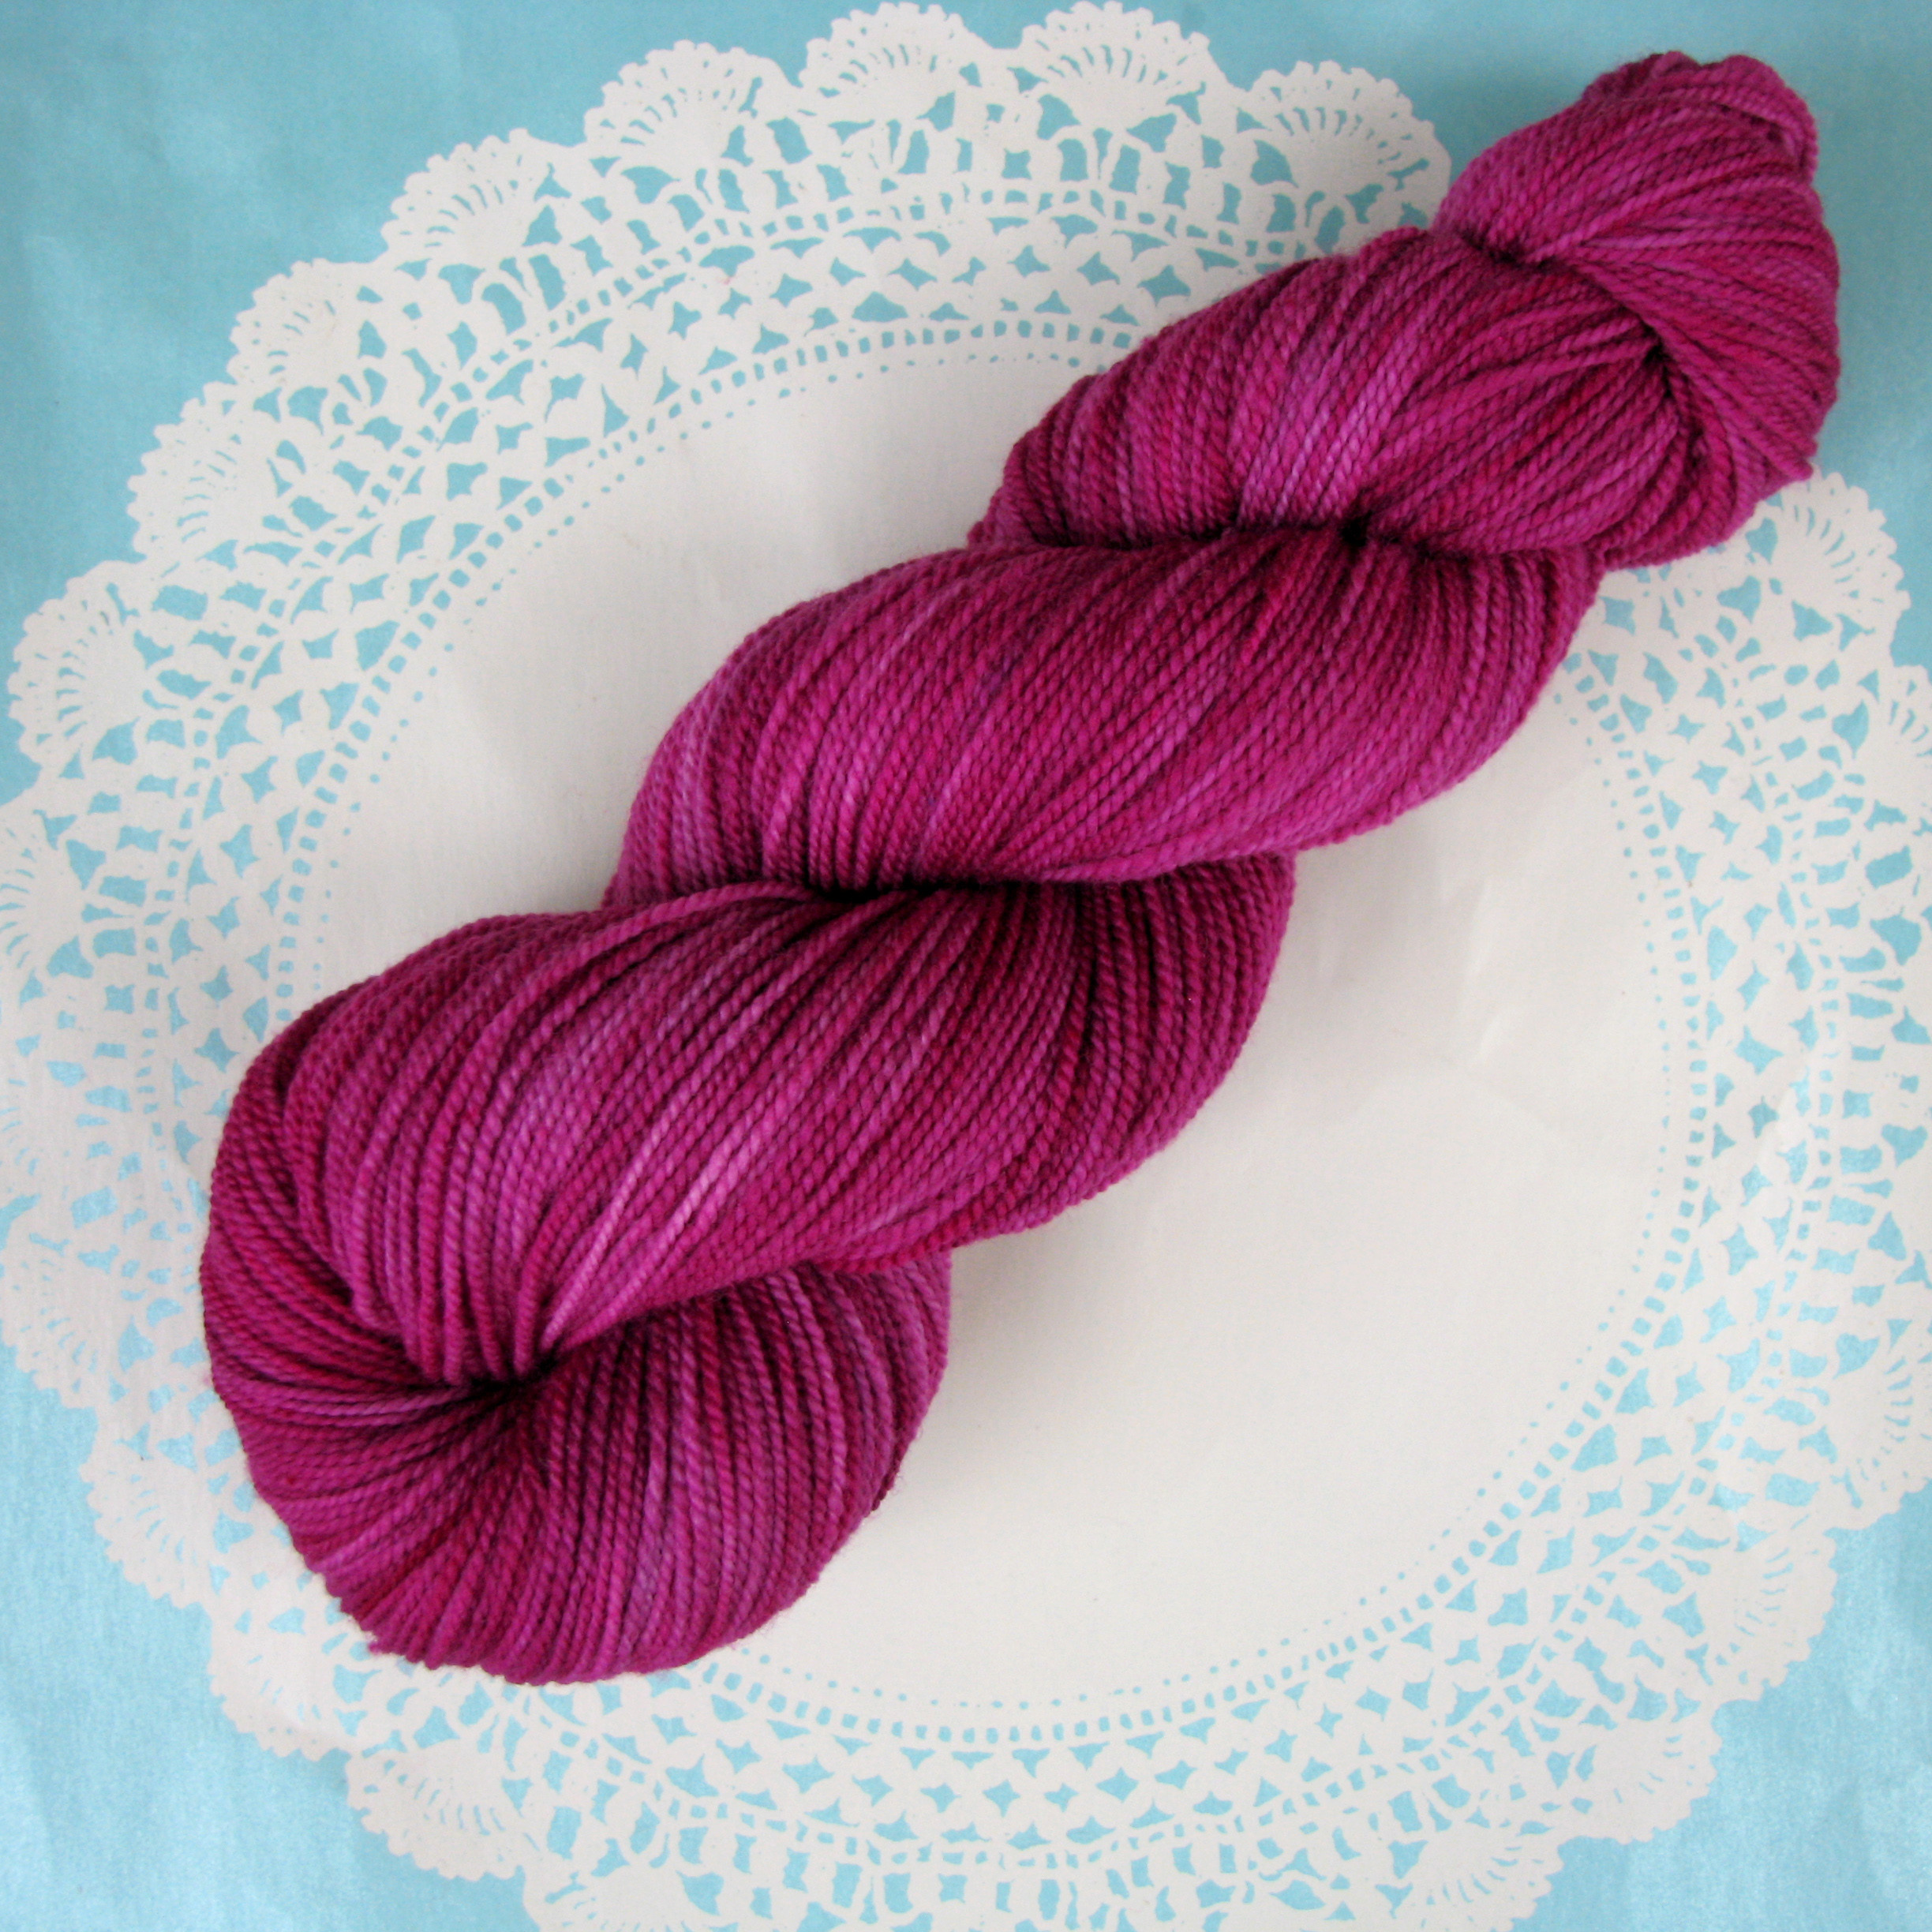 Yarn Sale Awesome Cyber Monday E Of A Kind Yarn Sale – Knitcircus Yarns Of Amazing 49 Pictures Yarn Sale